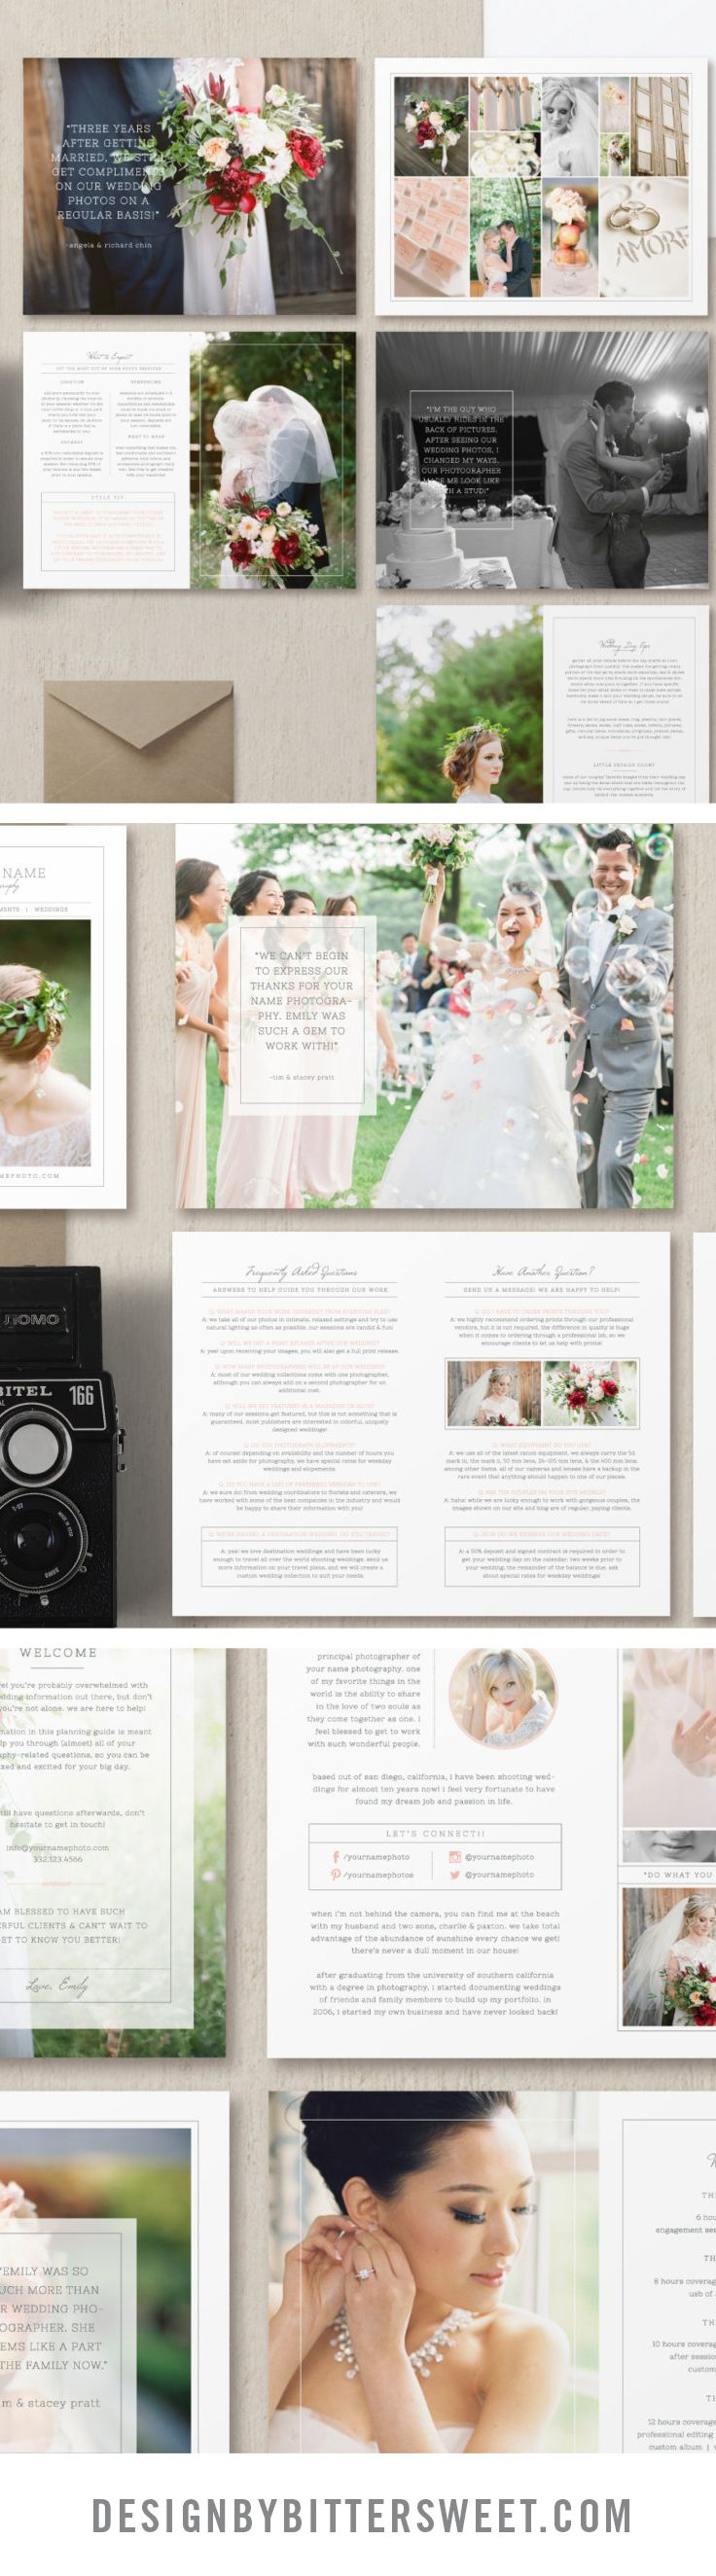 """Create a unique magazine to attract your ideal clients and stand out above the crowd with this wedding welcome packet. Professionally written text along with customizable sections give you a versatile package to deliver to your clients as a digital guide or as a beautifully printed 8.5""""x11"""" magazine to show off your work. Beautiful images by @abbiemcfarland"""